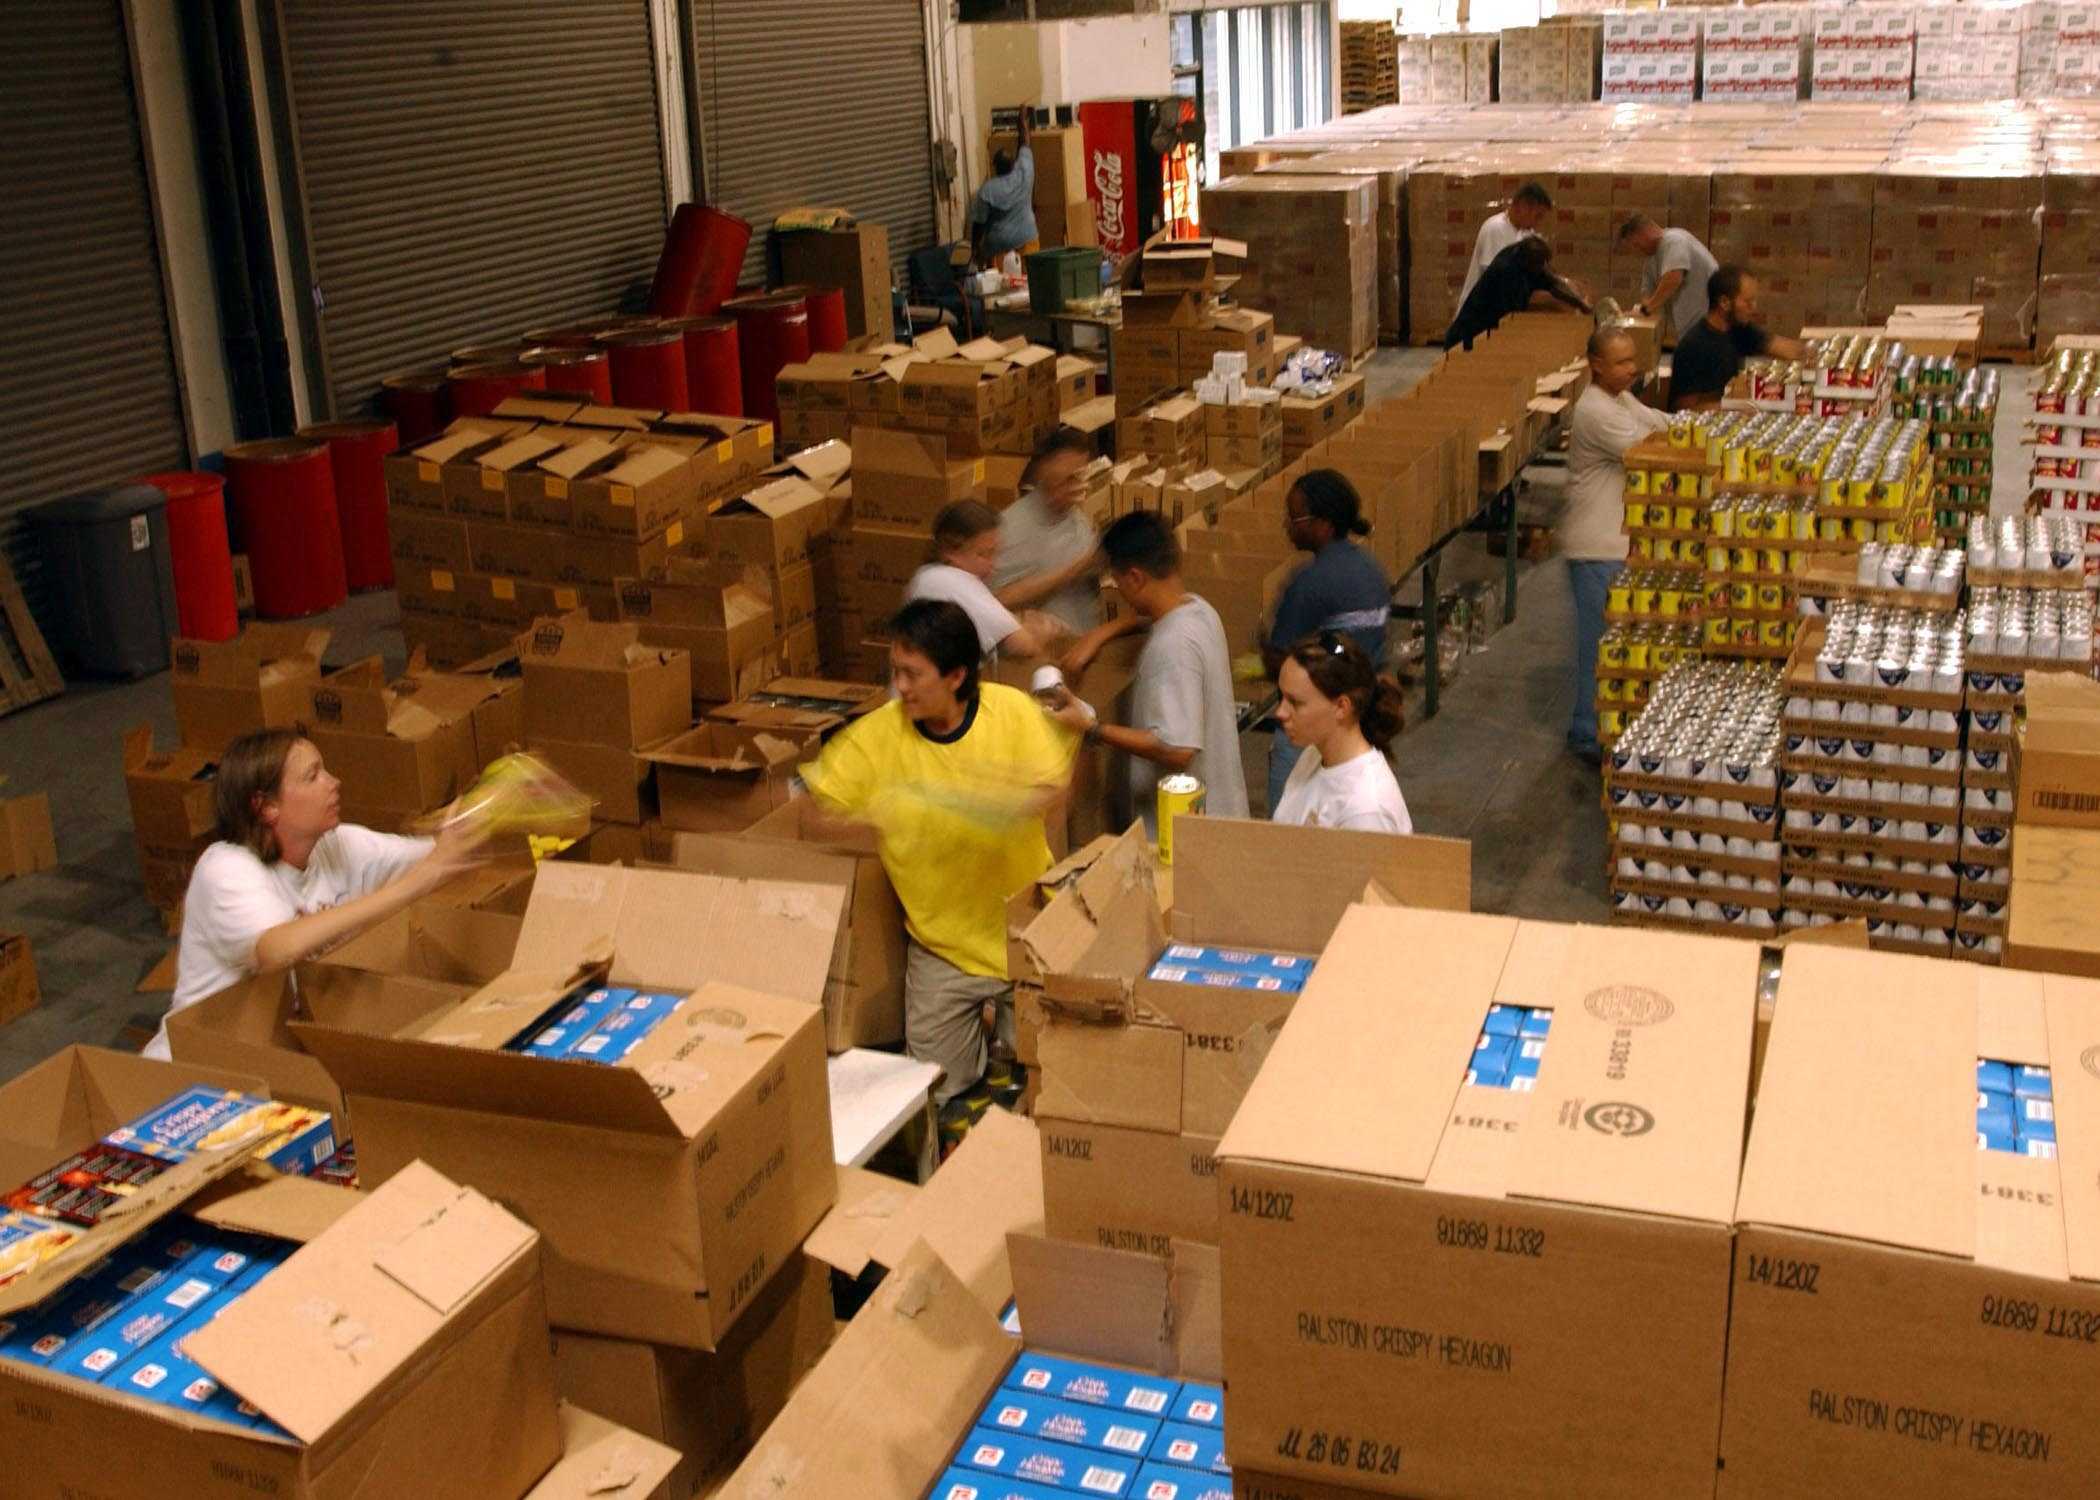 Men and women wearing yellow and white shirts  loading food into  cardboard boxes at a Food Bank